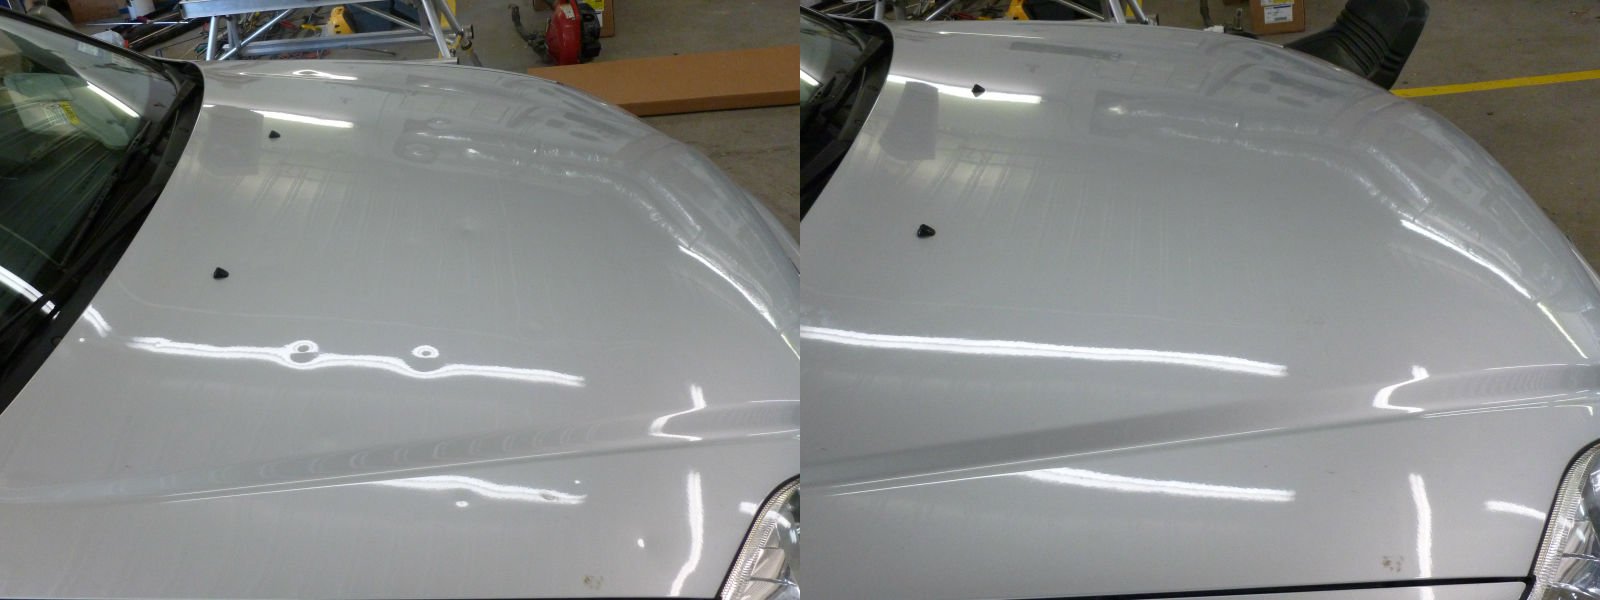 Paintless Dent Repair >> 2000 Honda Civic with Hail Damage Before and After ...